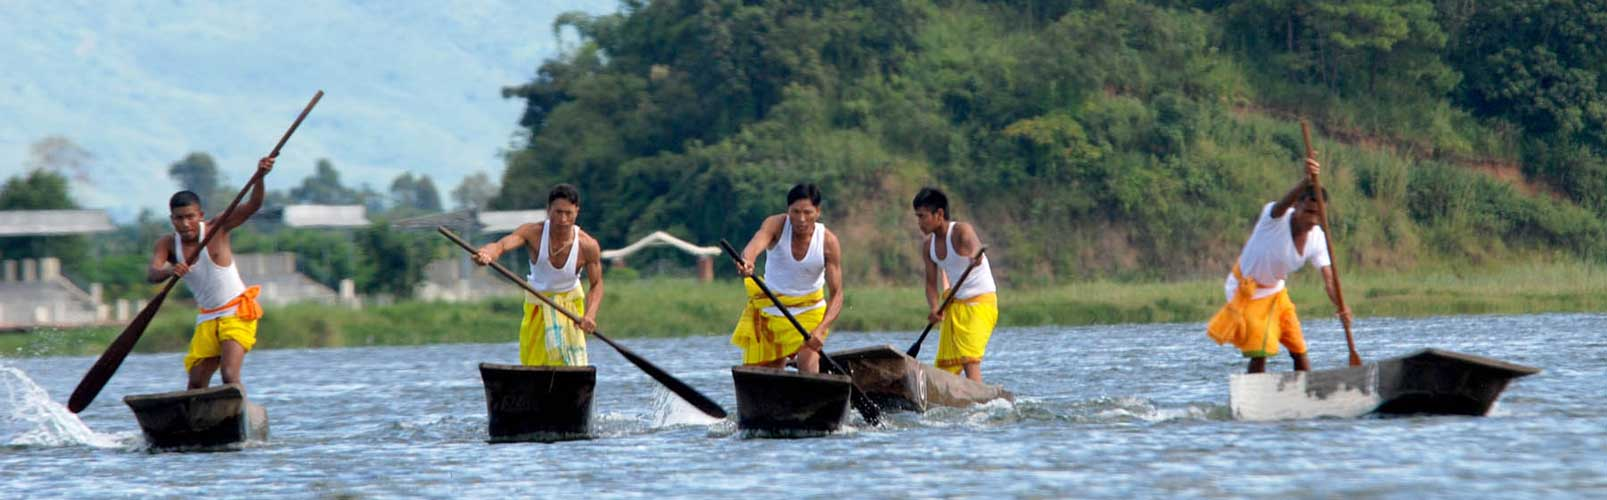 Manipur - Boat competition at Loktak Lake